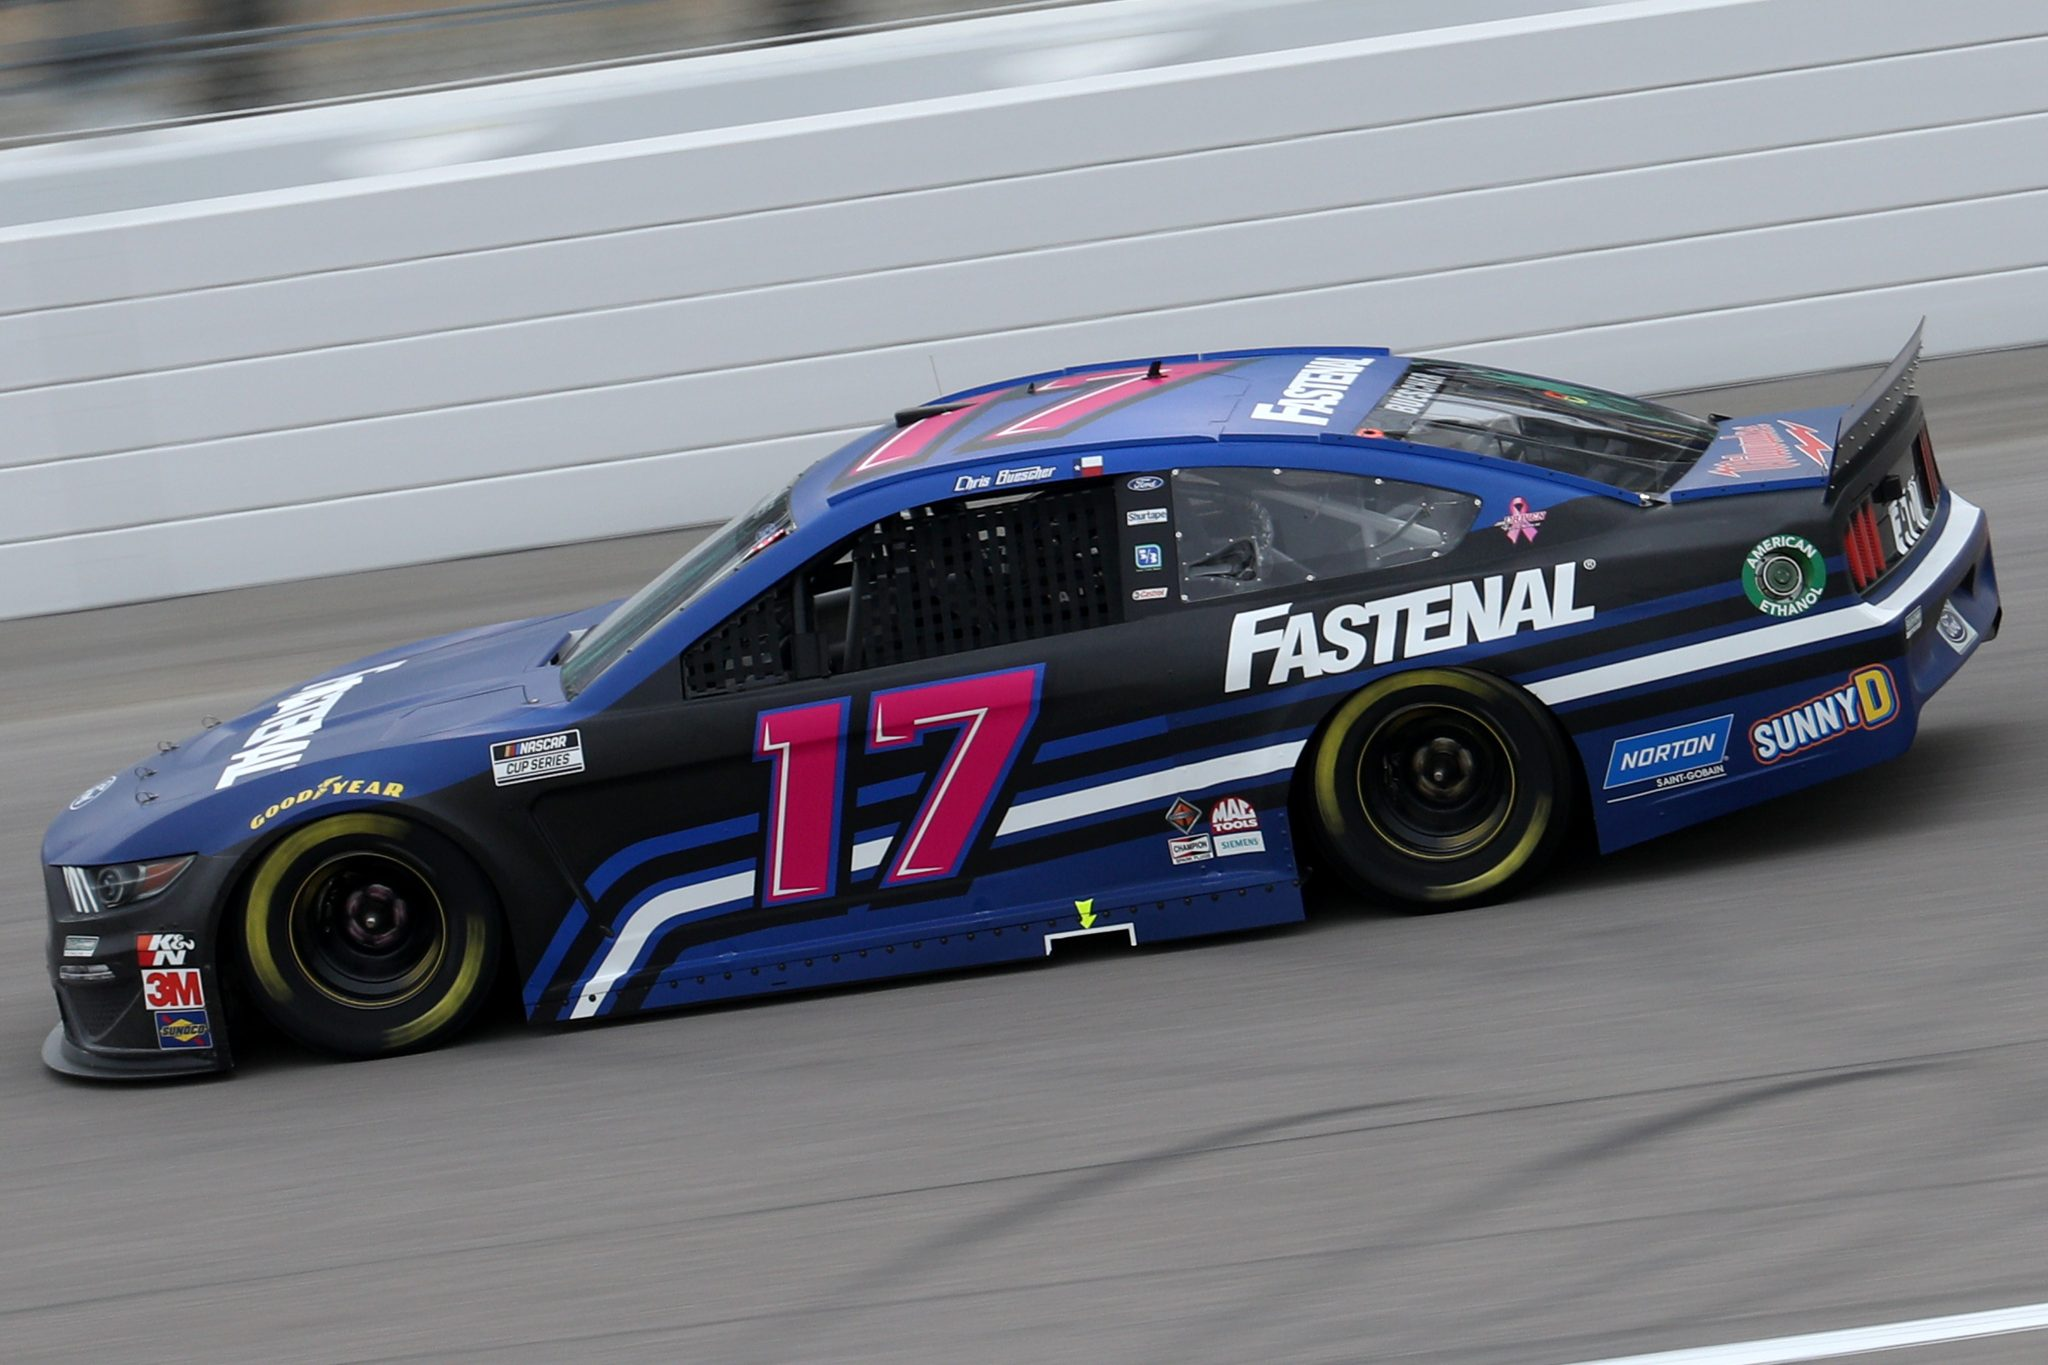 KANSAS CITY, KANSAS - OCTOBER 18: Chris Buescher, driver of the #17 Fastenal Ford, drives during the NASCAR Cup Series Hollywood Casino 400 at Kansas Speedway on October 18, 2020 in Kansas City, Kansas. (Photo by Chris Graythen/Getty Images) | Getty Images